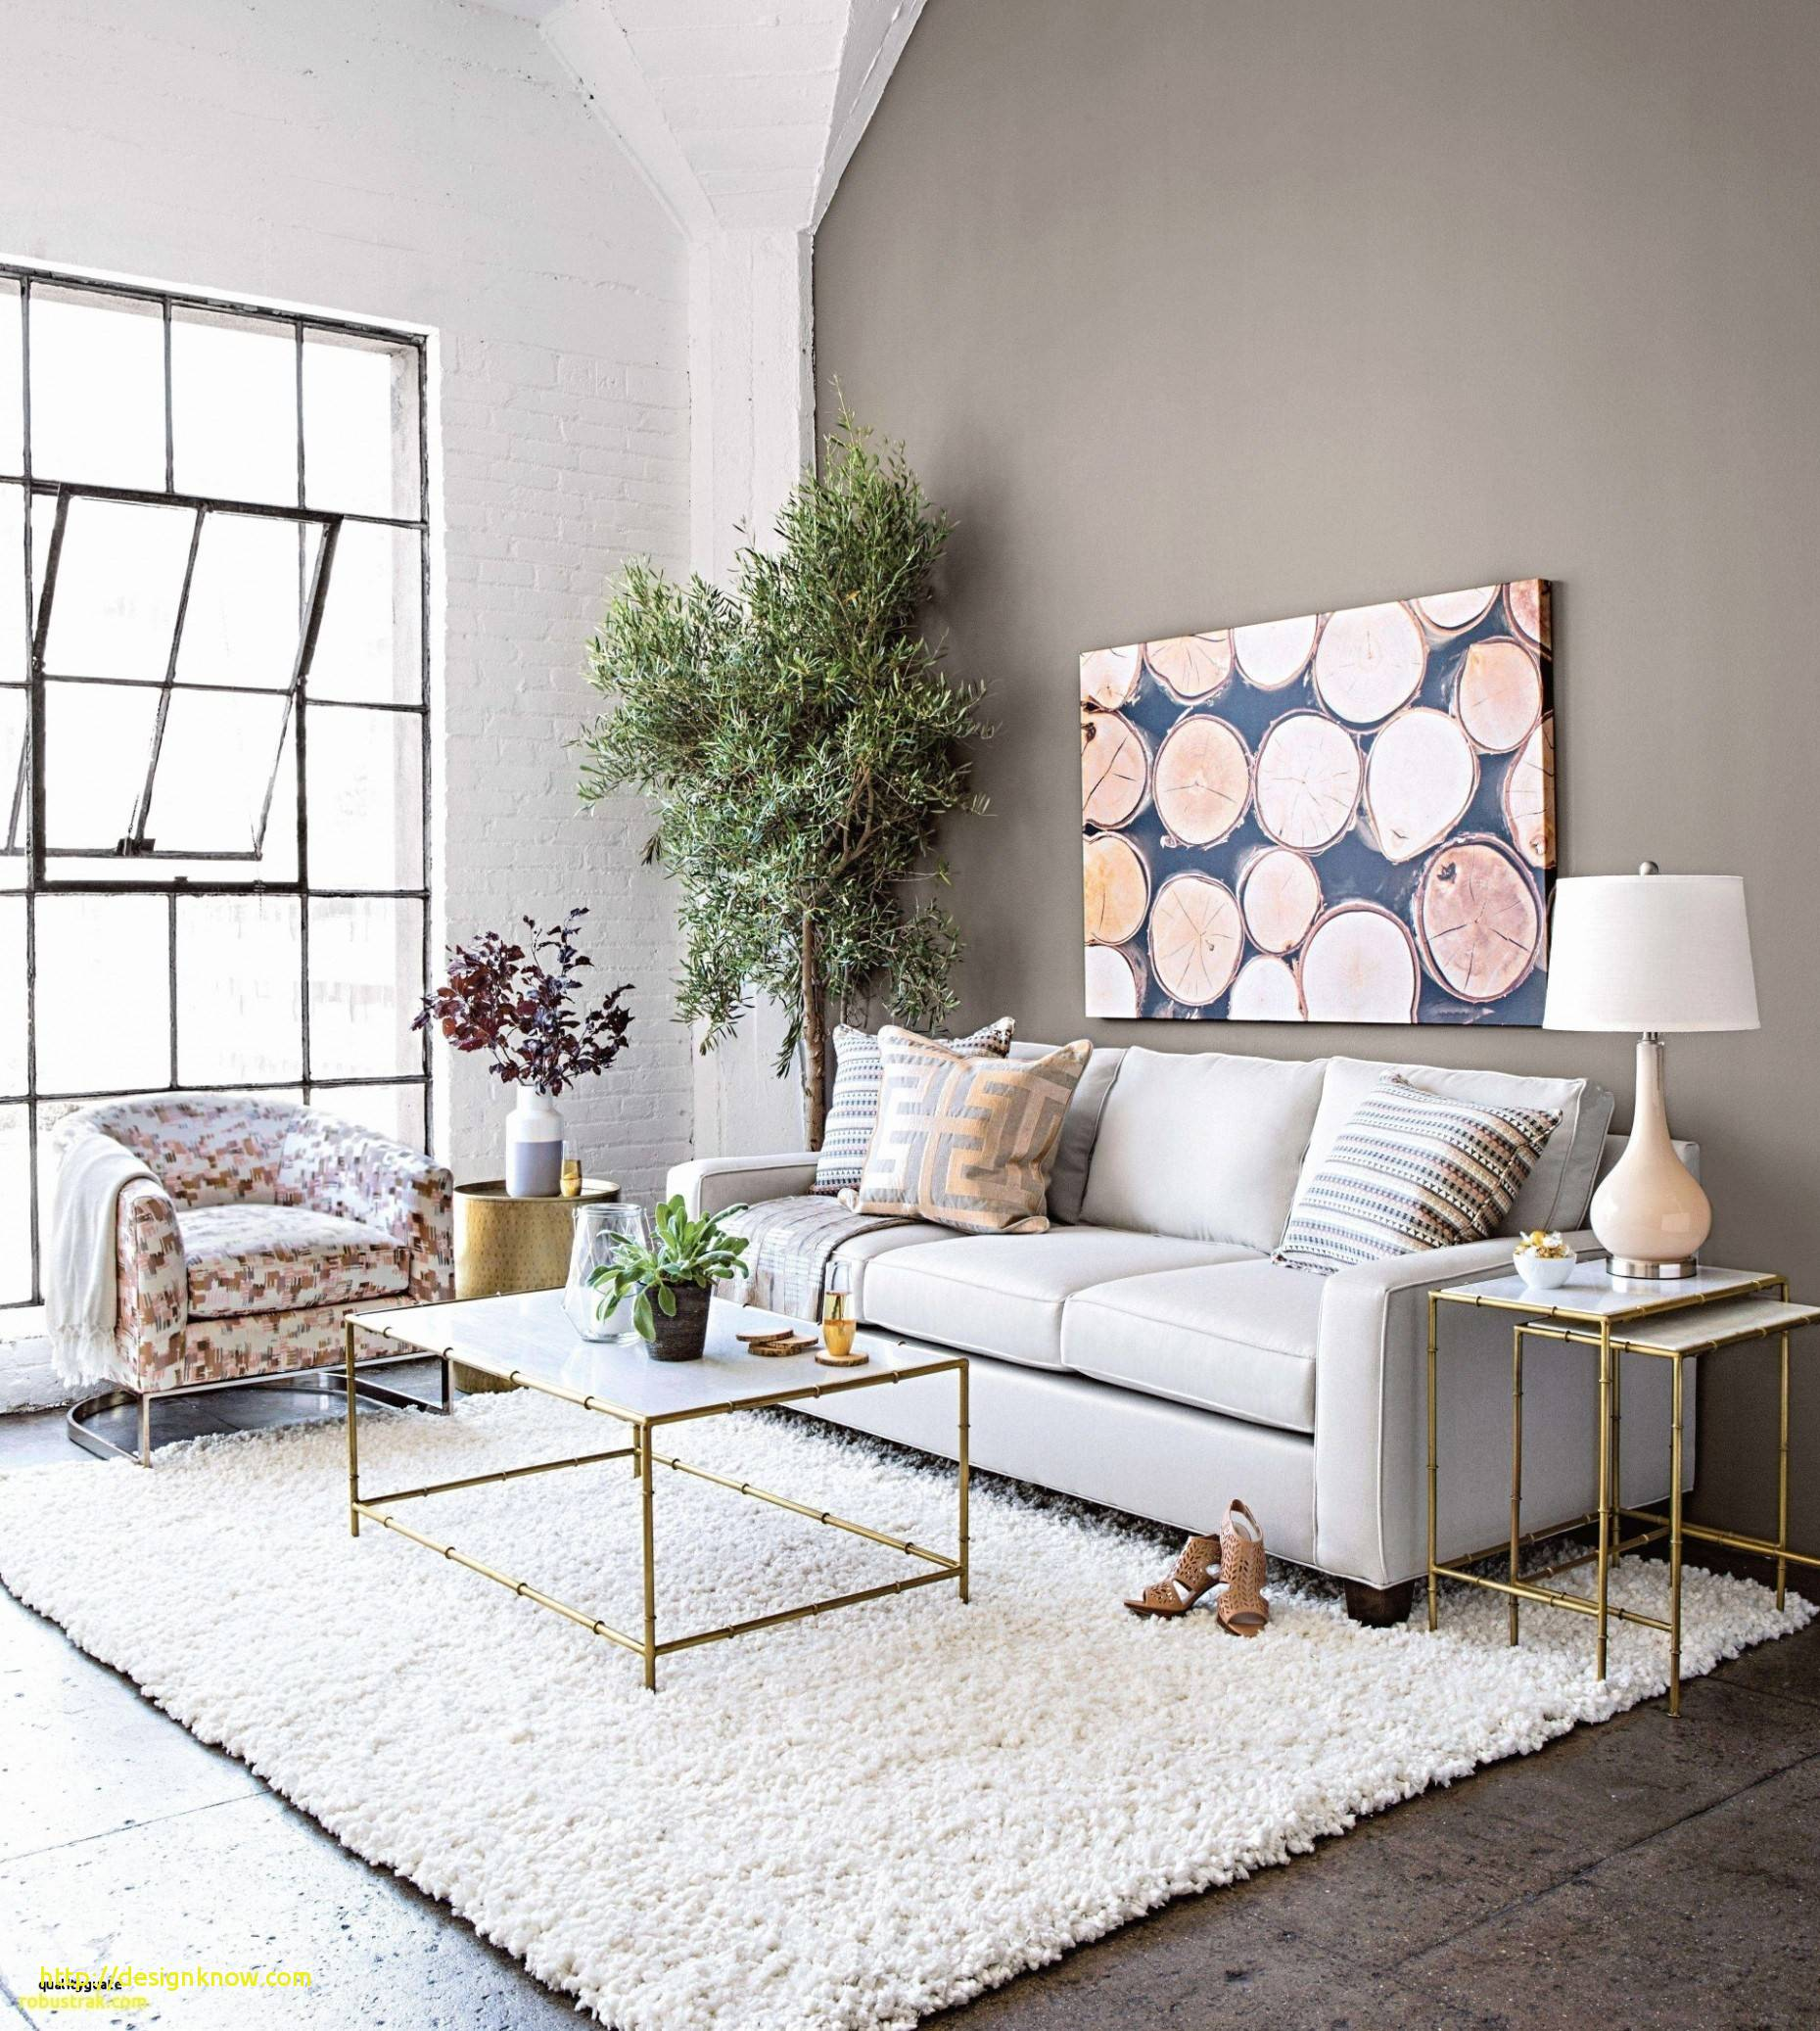 interior design blogs for small spaces new awesome interior design small spaces home design and interior design of interior design blogs for small spaces